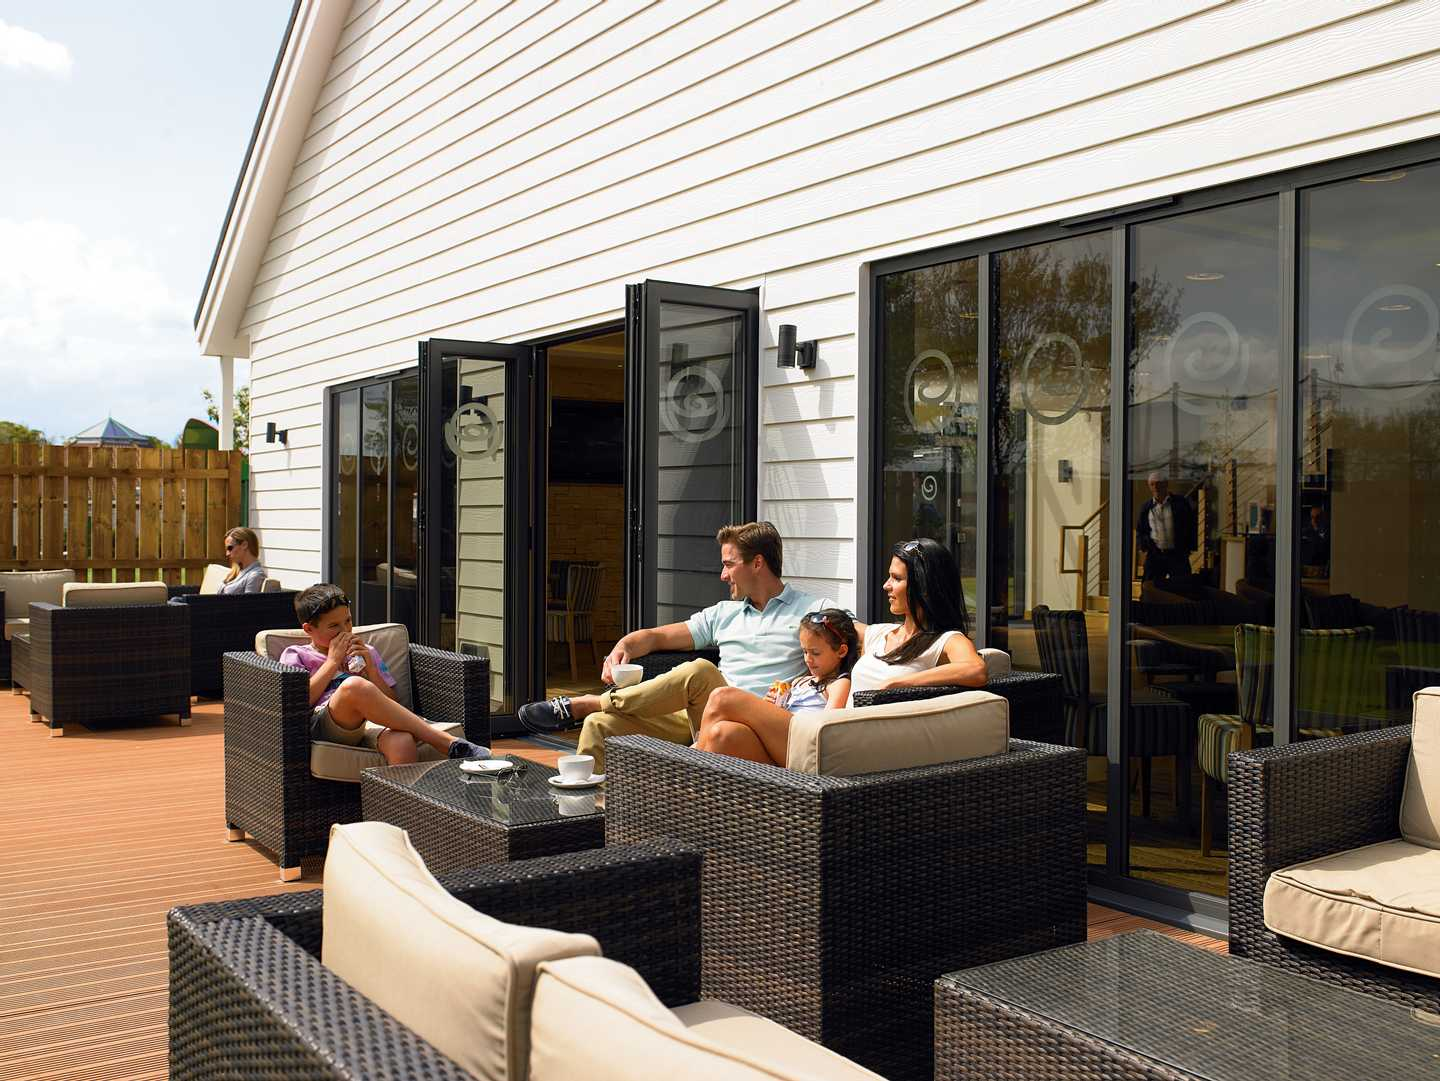 A family sitting on the decking area of the Owners' Lounge at Hopton